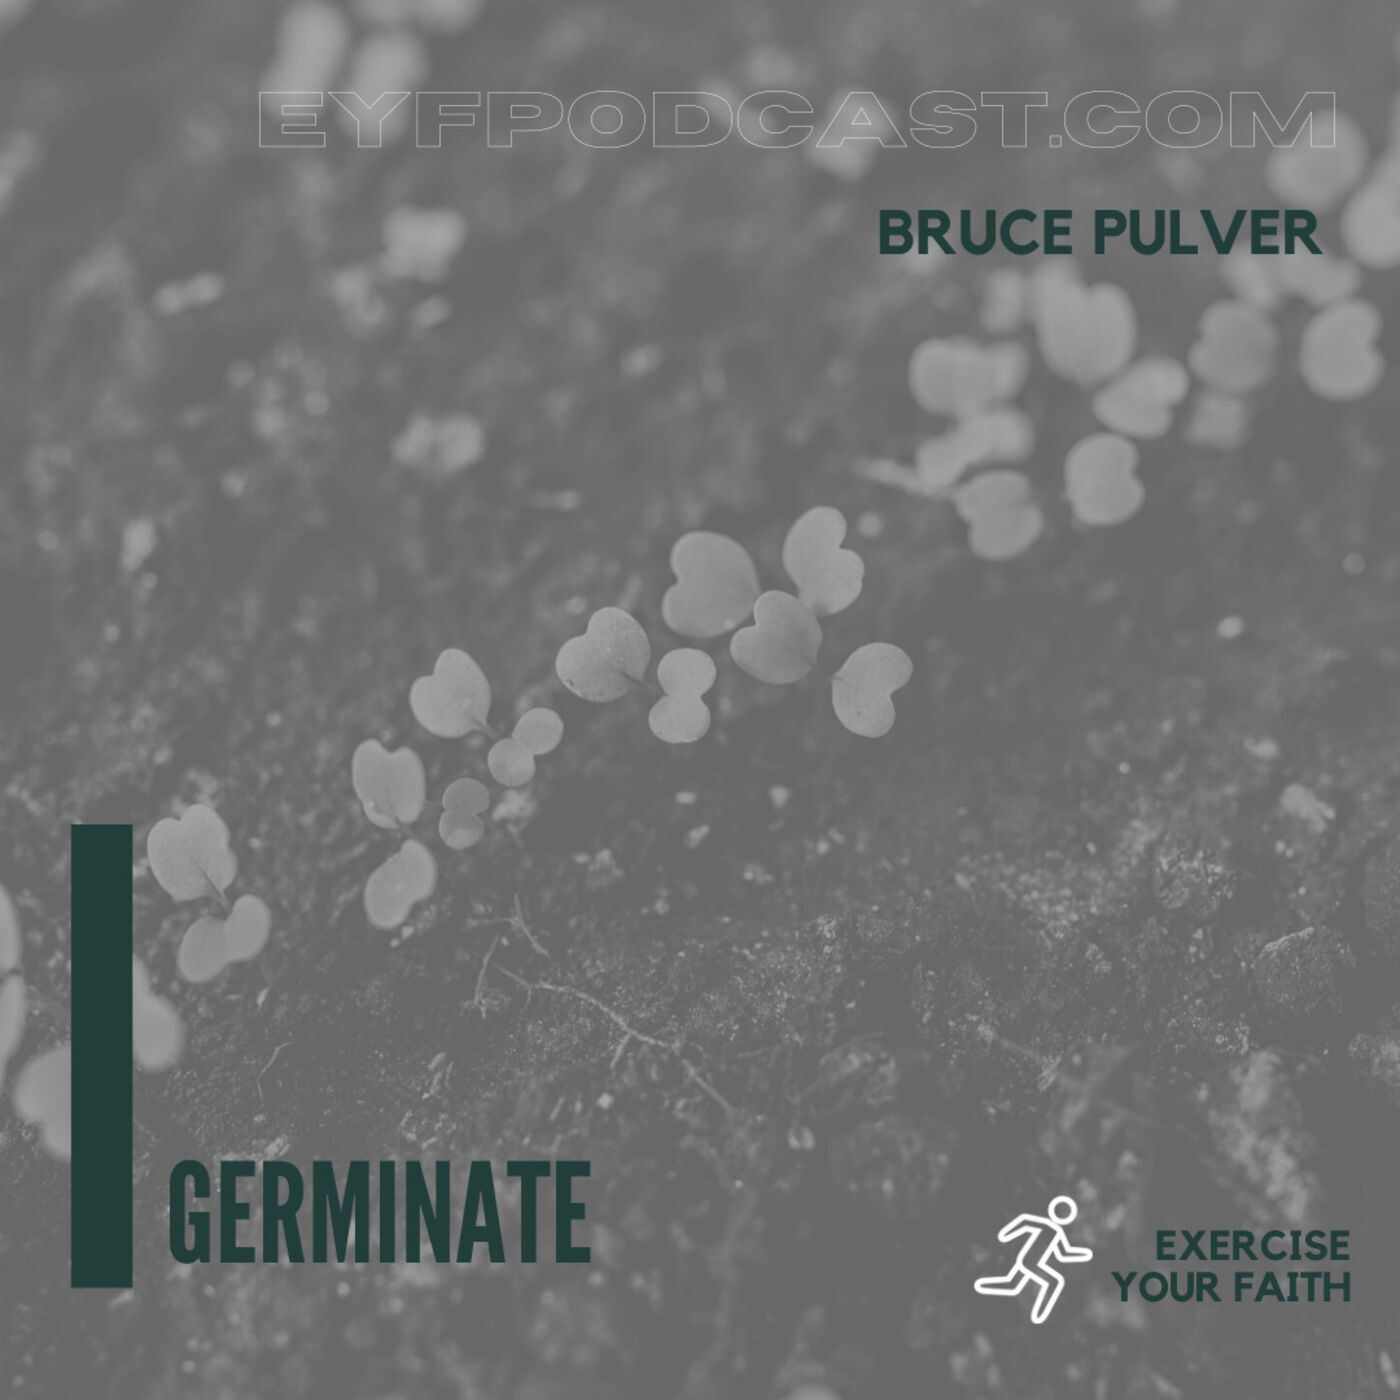 EYFPodcast- Exercise Your Faith by letting things GERMINATE as God works through you with Bruce Pulver.